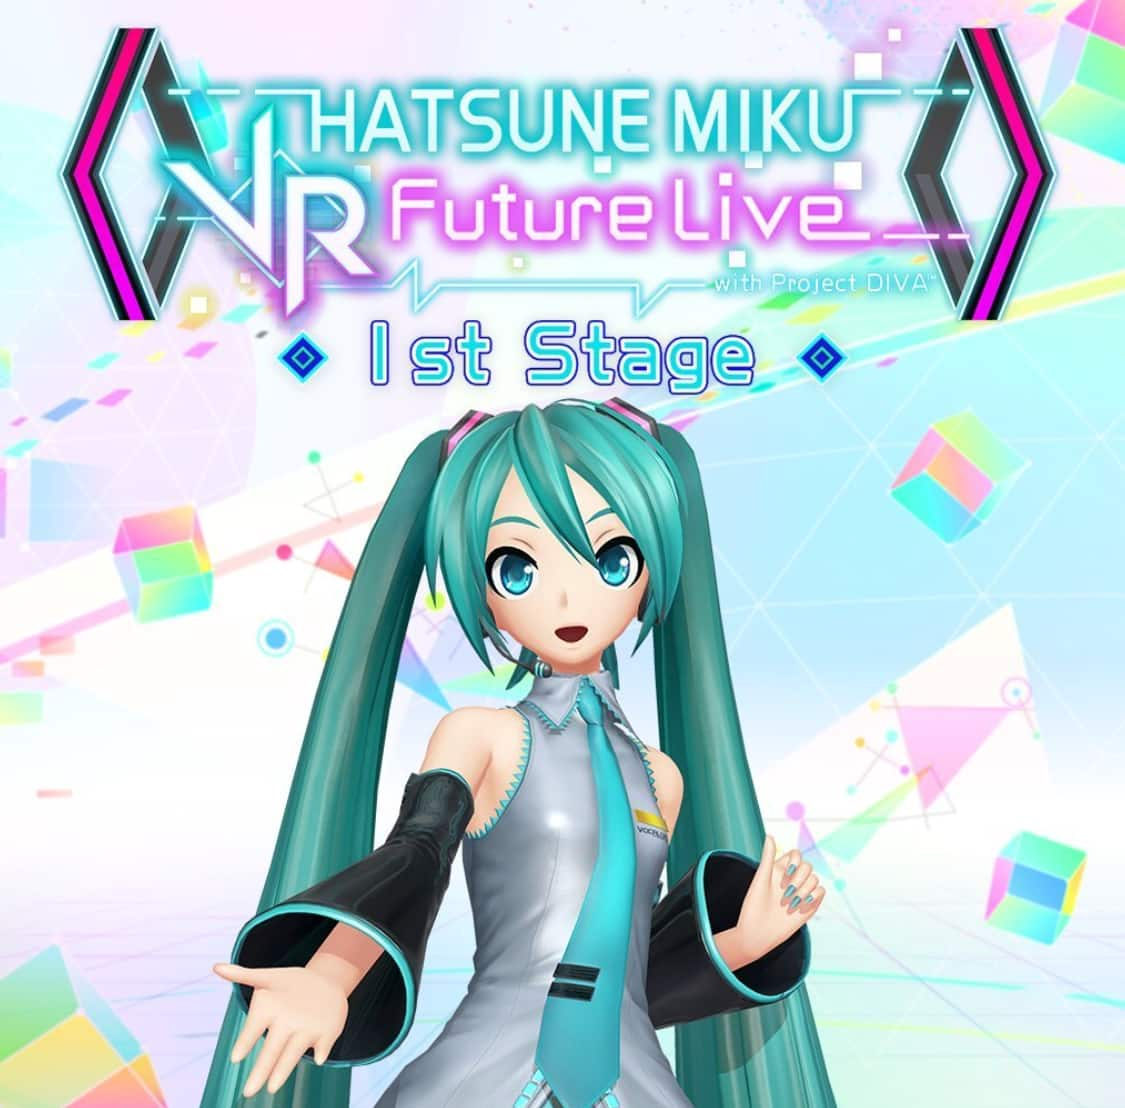 Amazon: $8.99  Hatsune Miku: VR Future Live - 1st Stage - PlayStation VR [Digital Code]